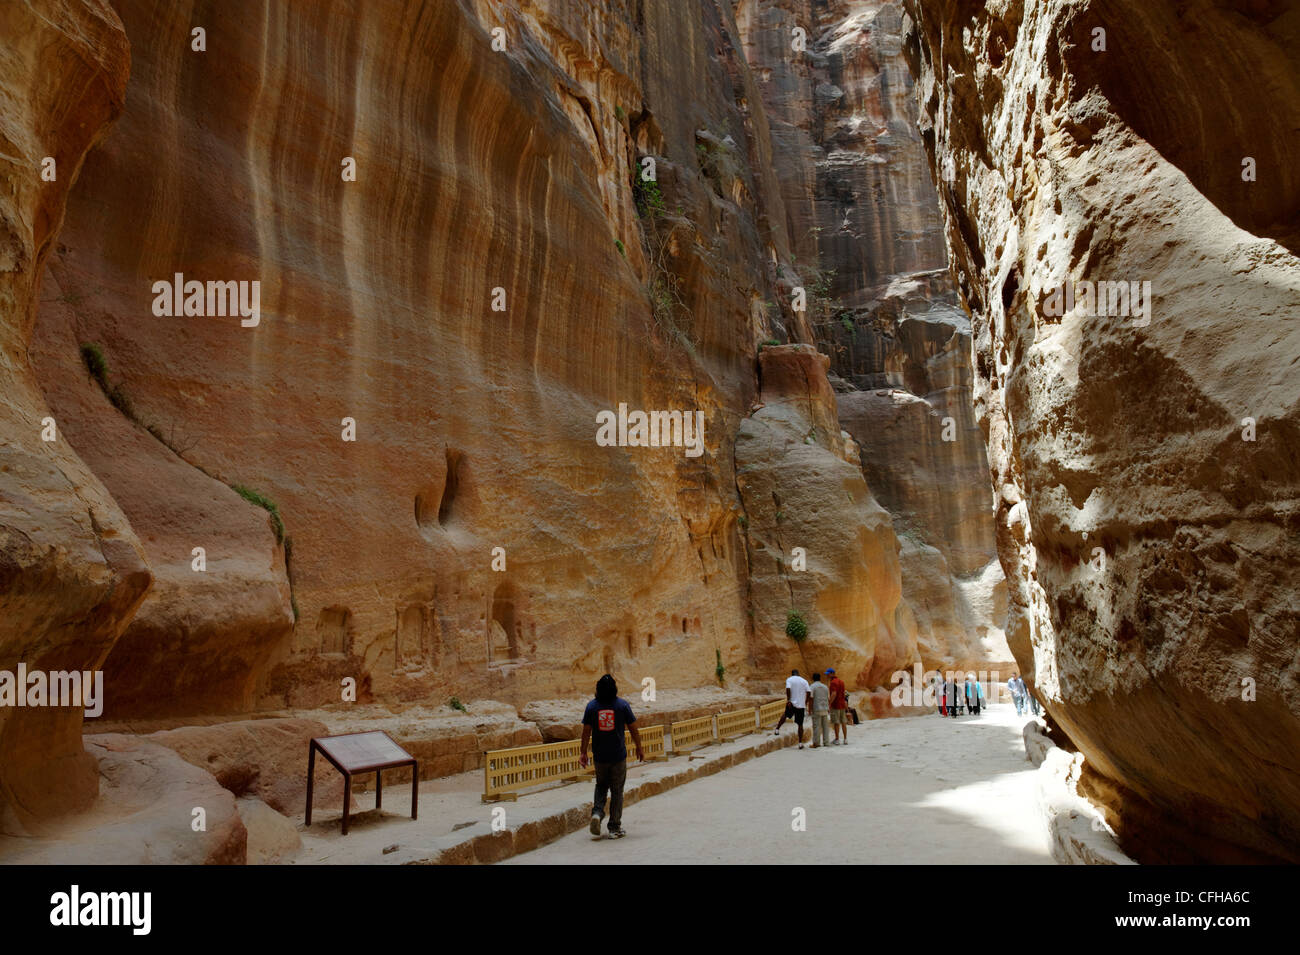 Petra. Jordan. View of tourists walking through the narrow ravine known as the Siq which gives spectacular introduction Stock Photo